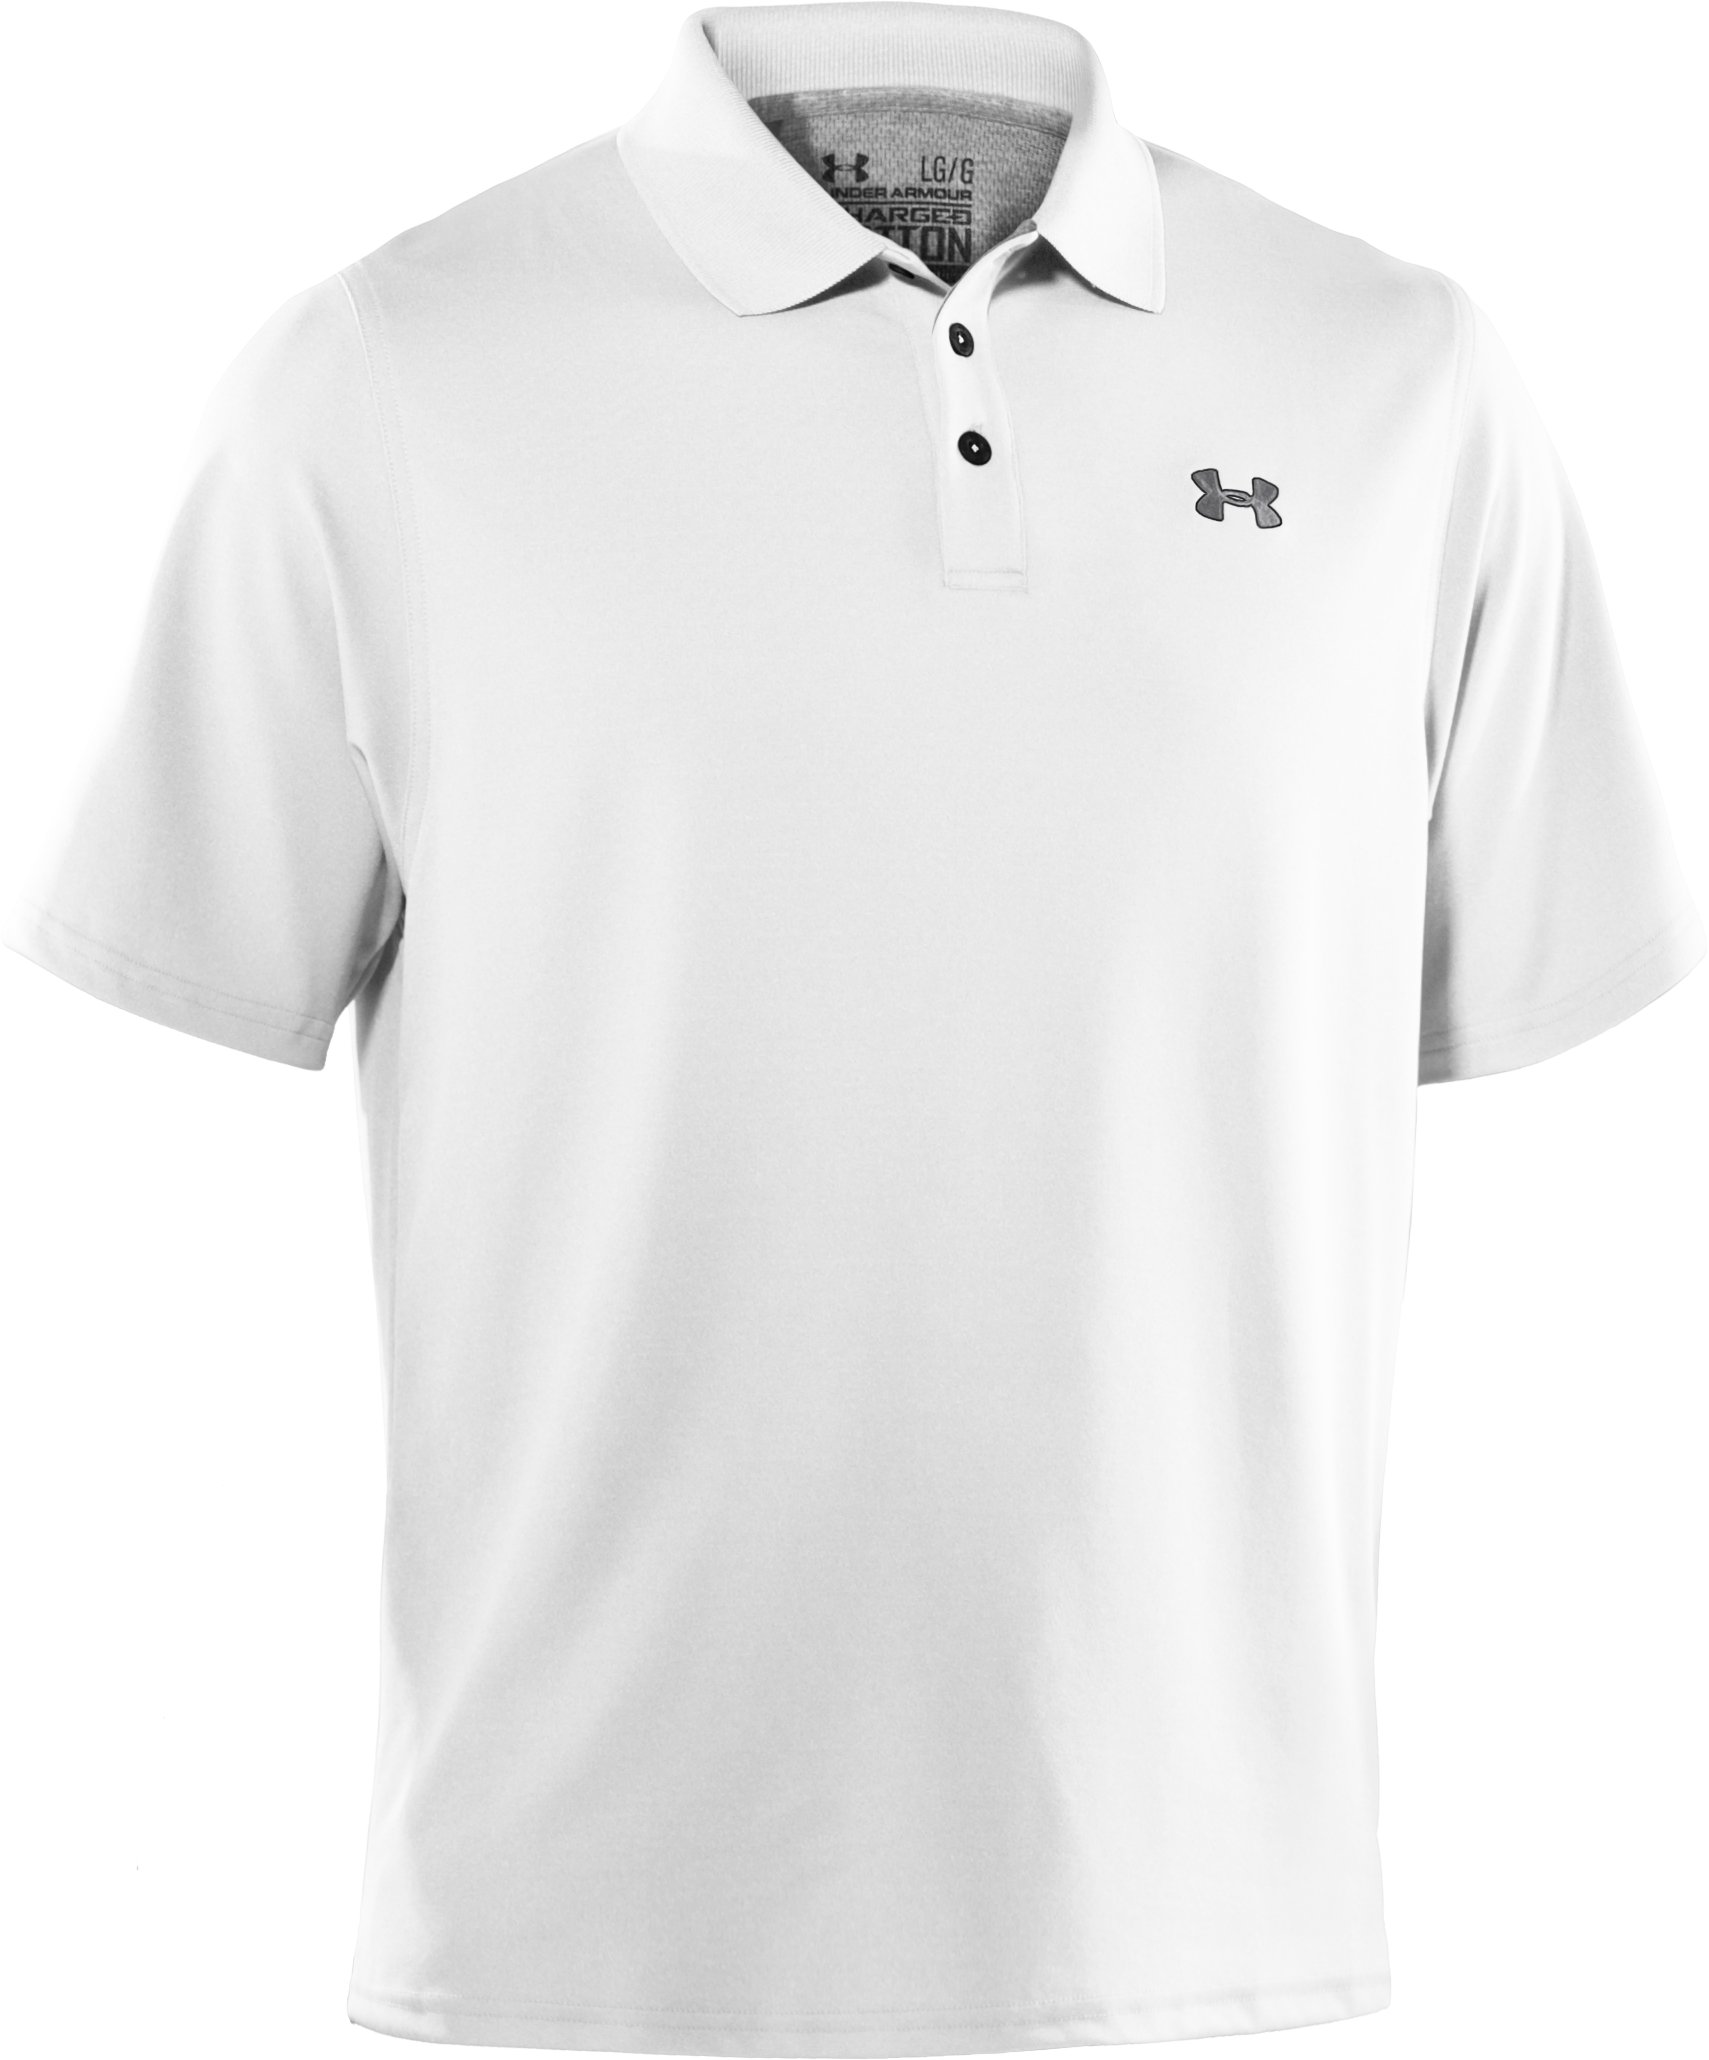 Men's Charged Cotton® Pique Polo, White